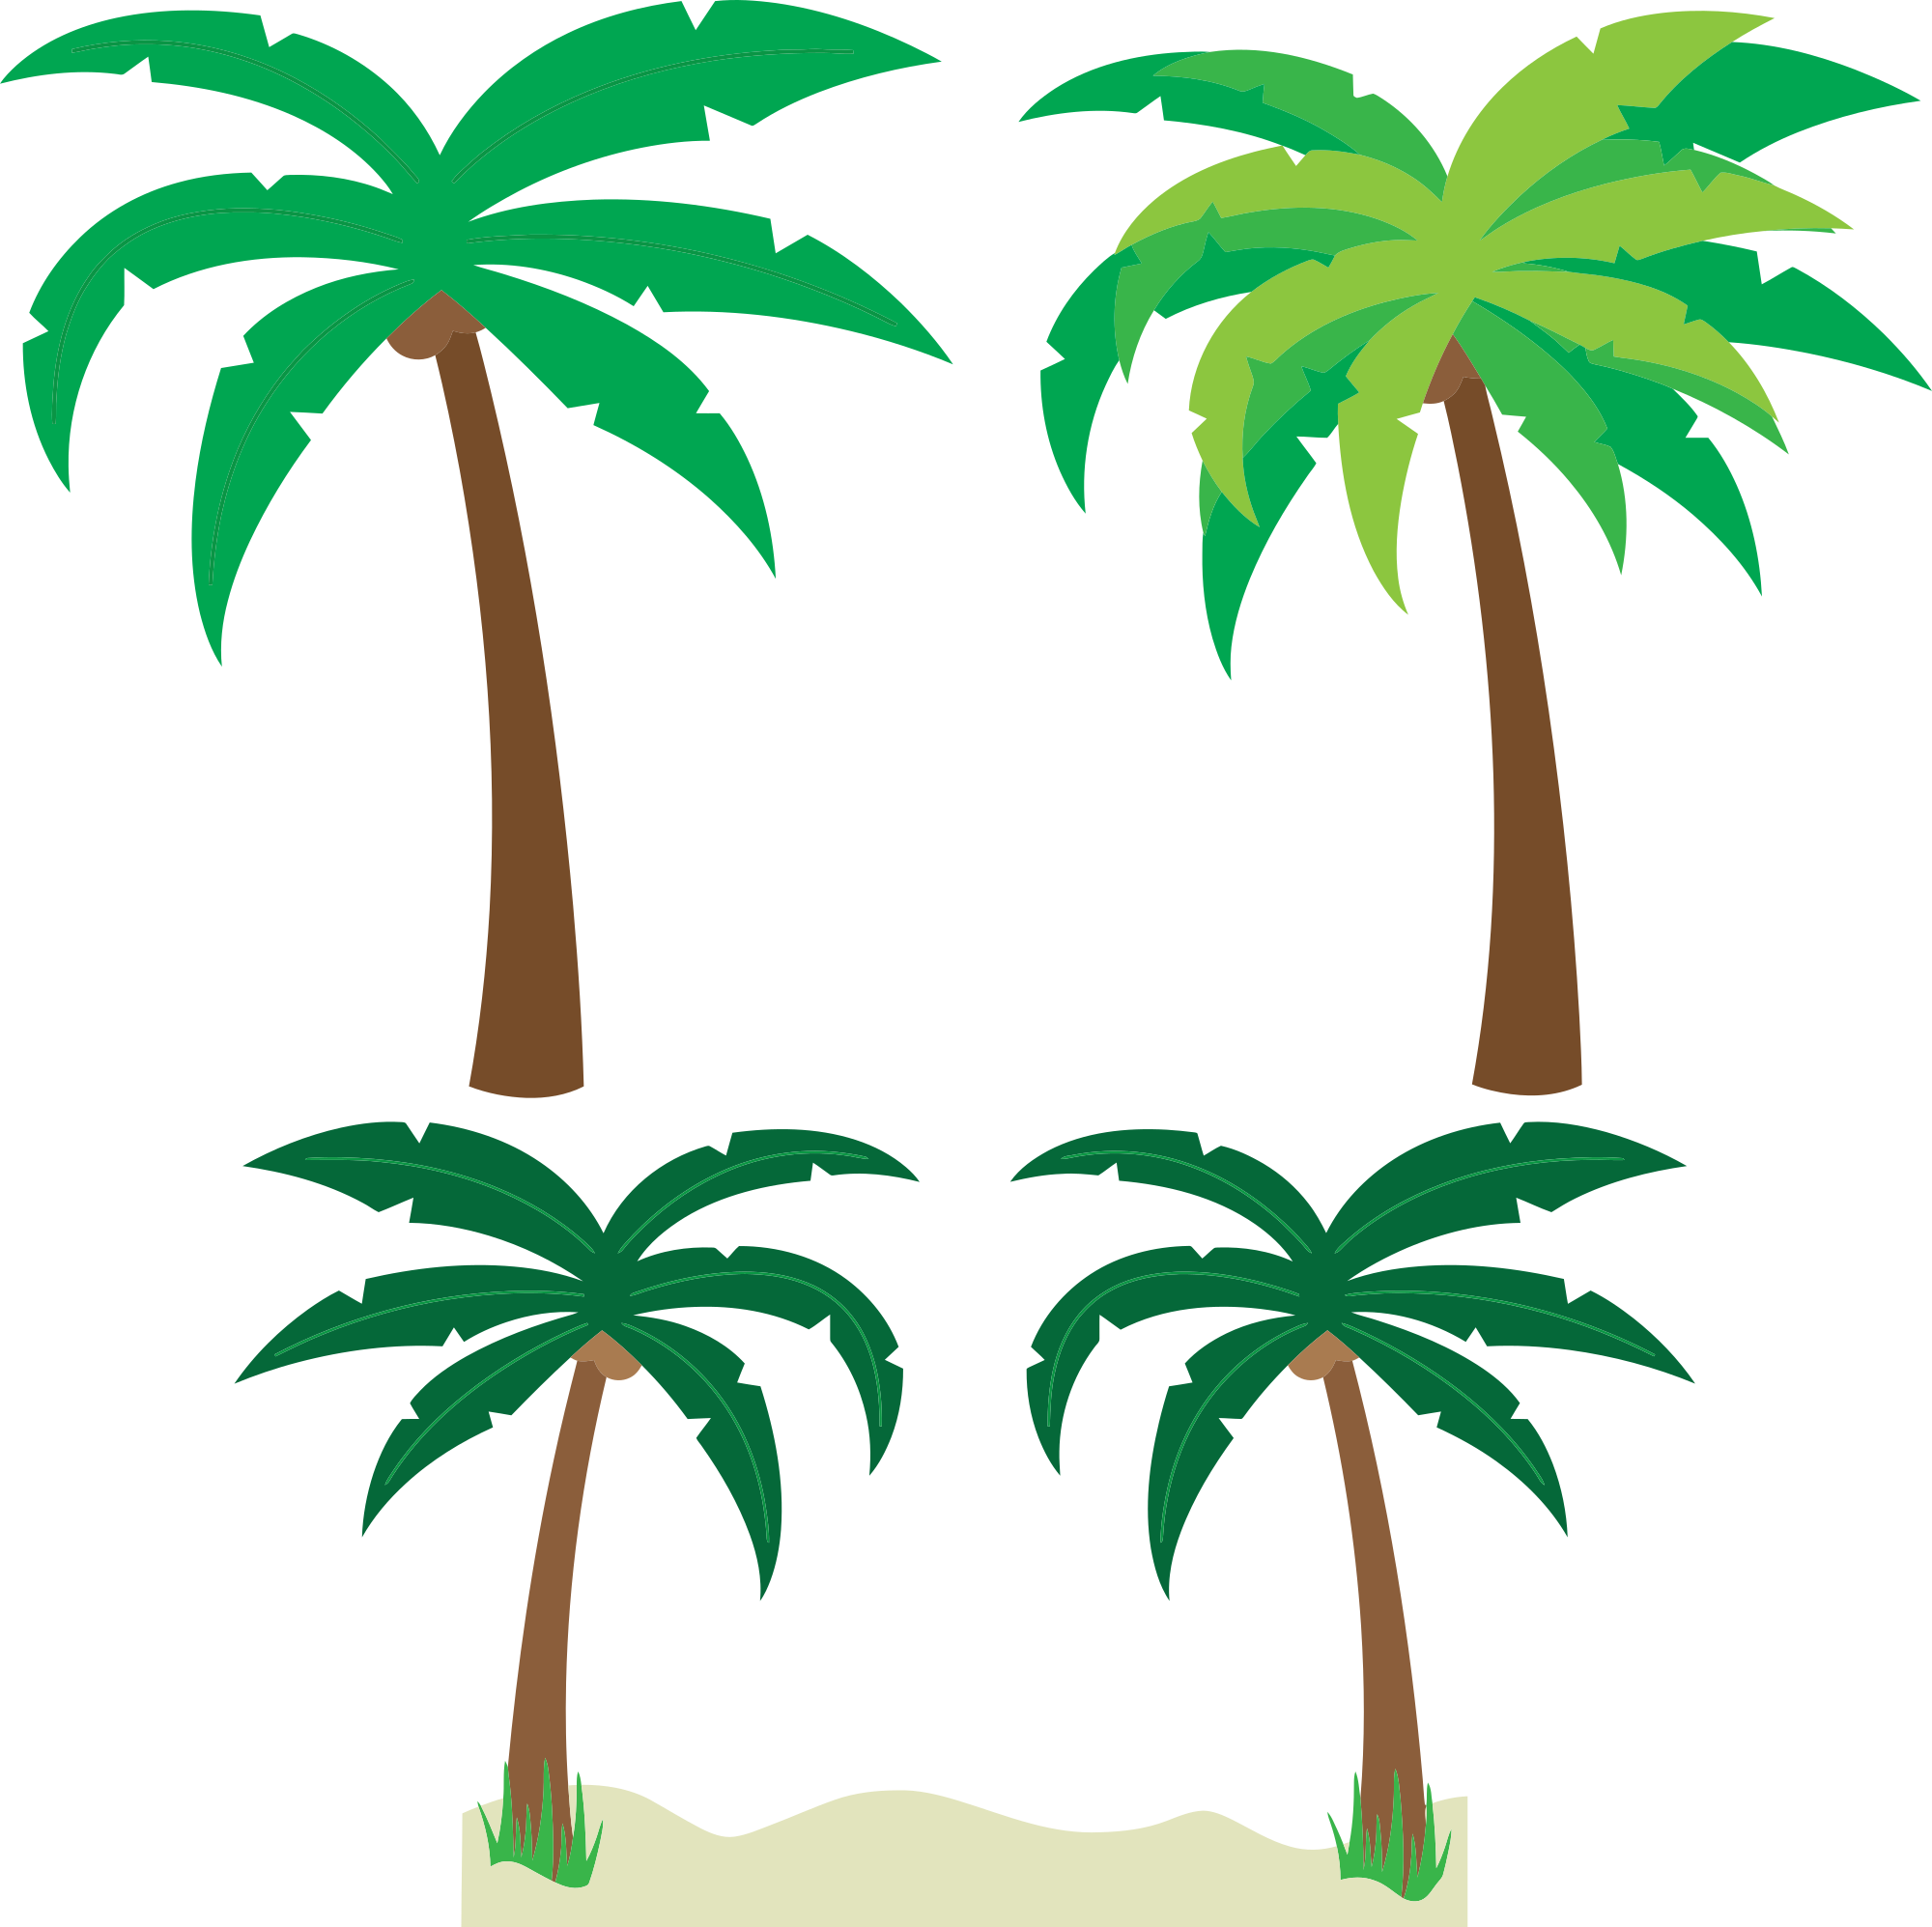 Tree removal clipart graphic freeuse stock Palm tree art tropical palm trees clip art clip art palm tree 5 3 ... graphic freeuse stock